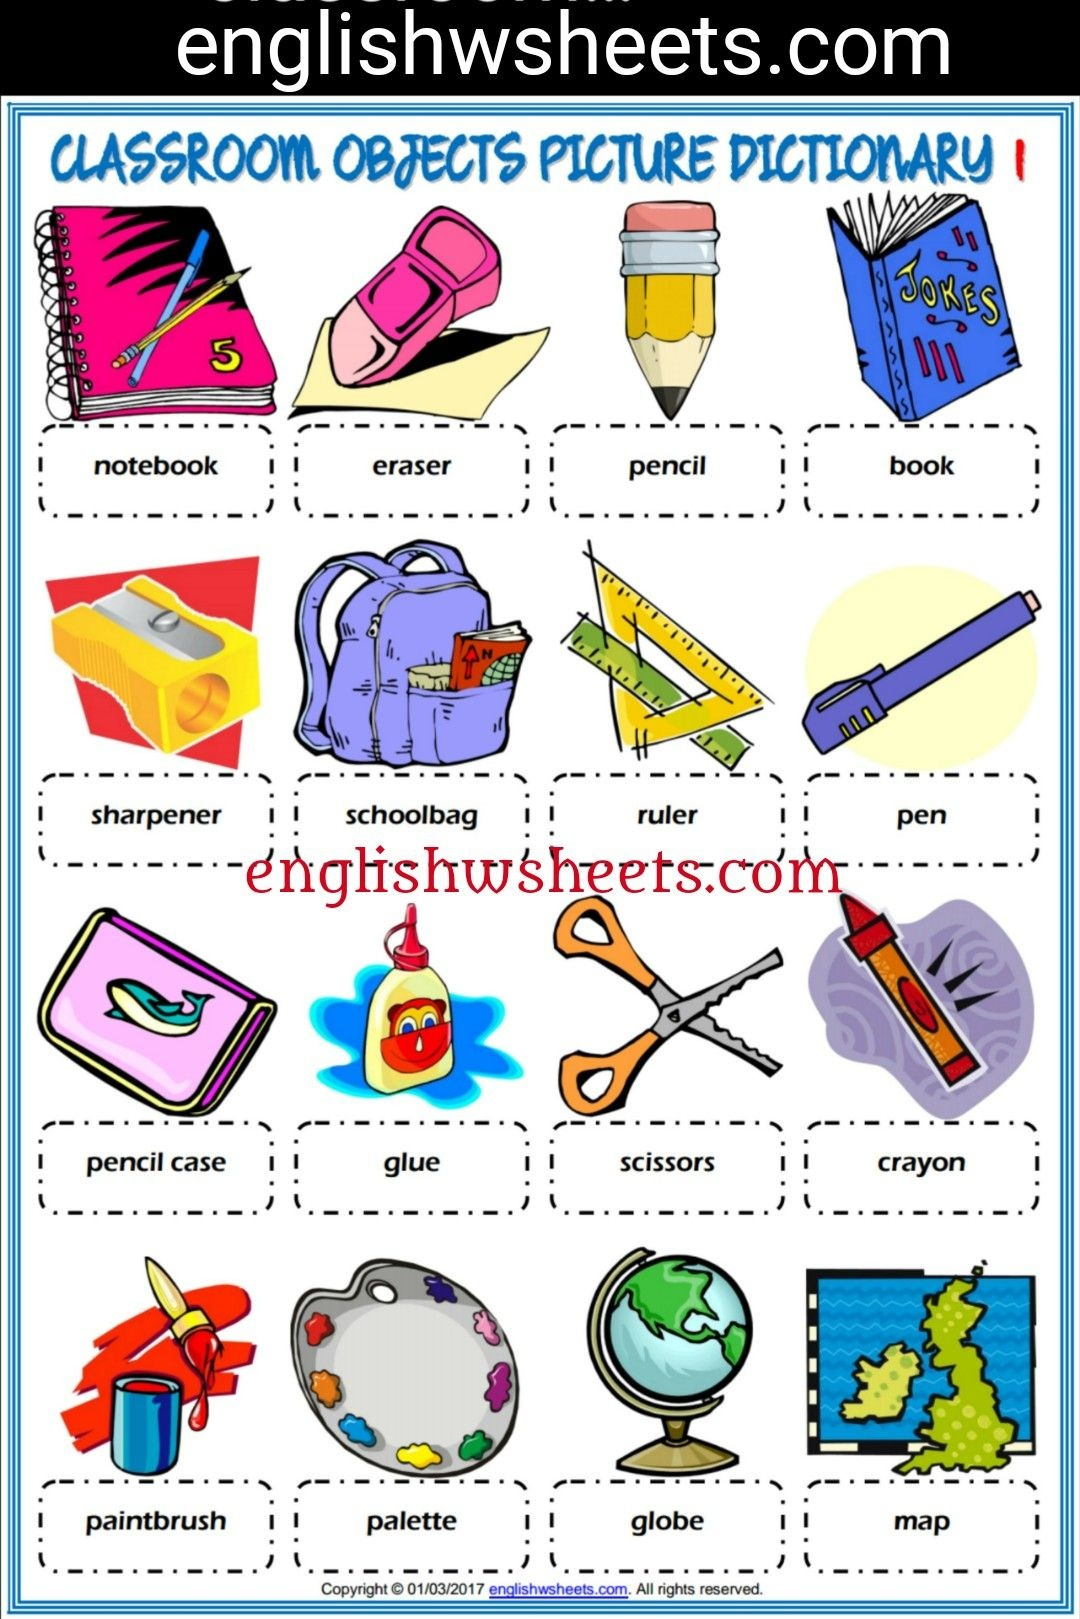 Classroom Objects Esl Printable Picture Dictionaries For Kids - Free Printable Picture Dictionary For Kids